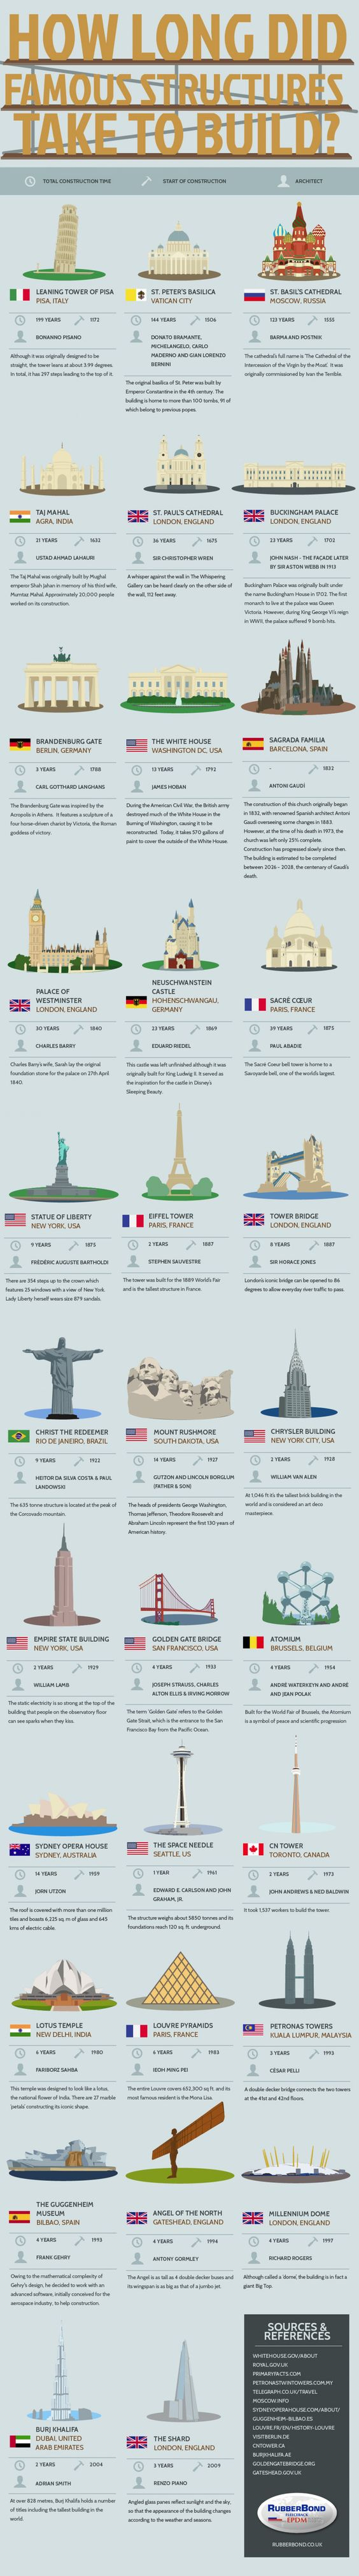 FAMOUS STRUCTURES